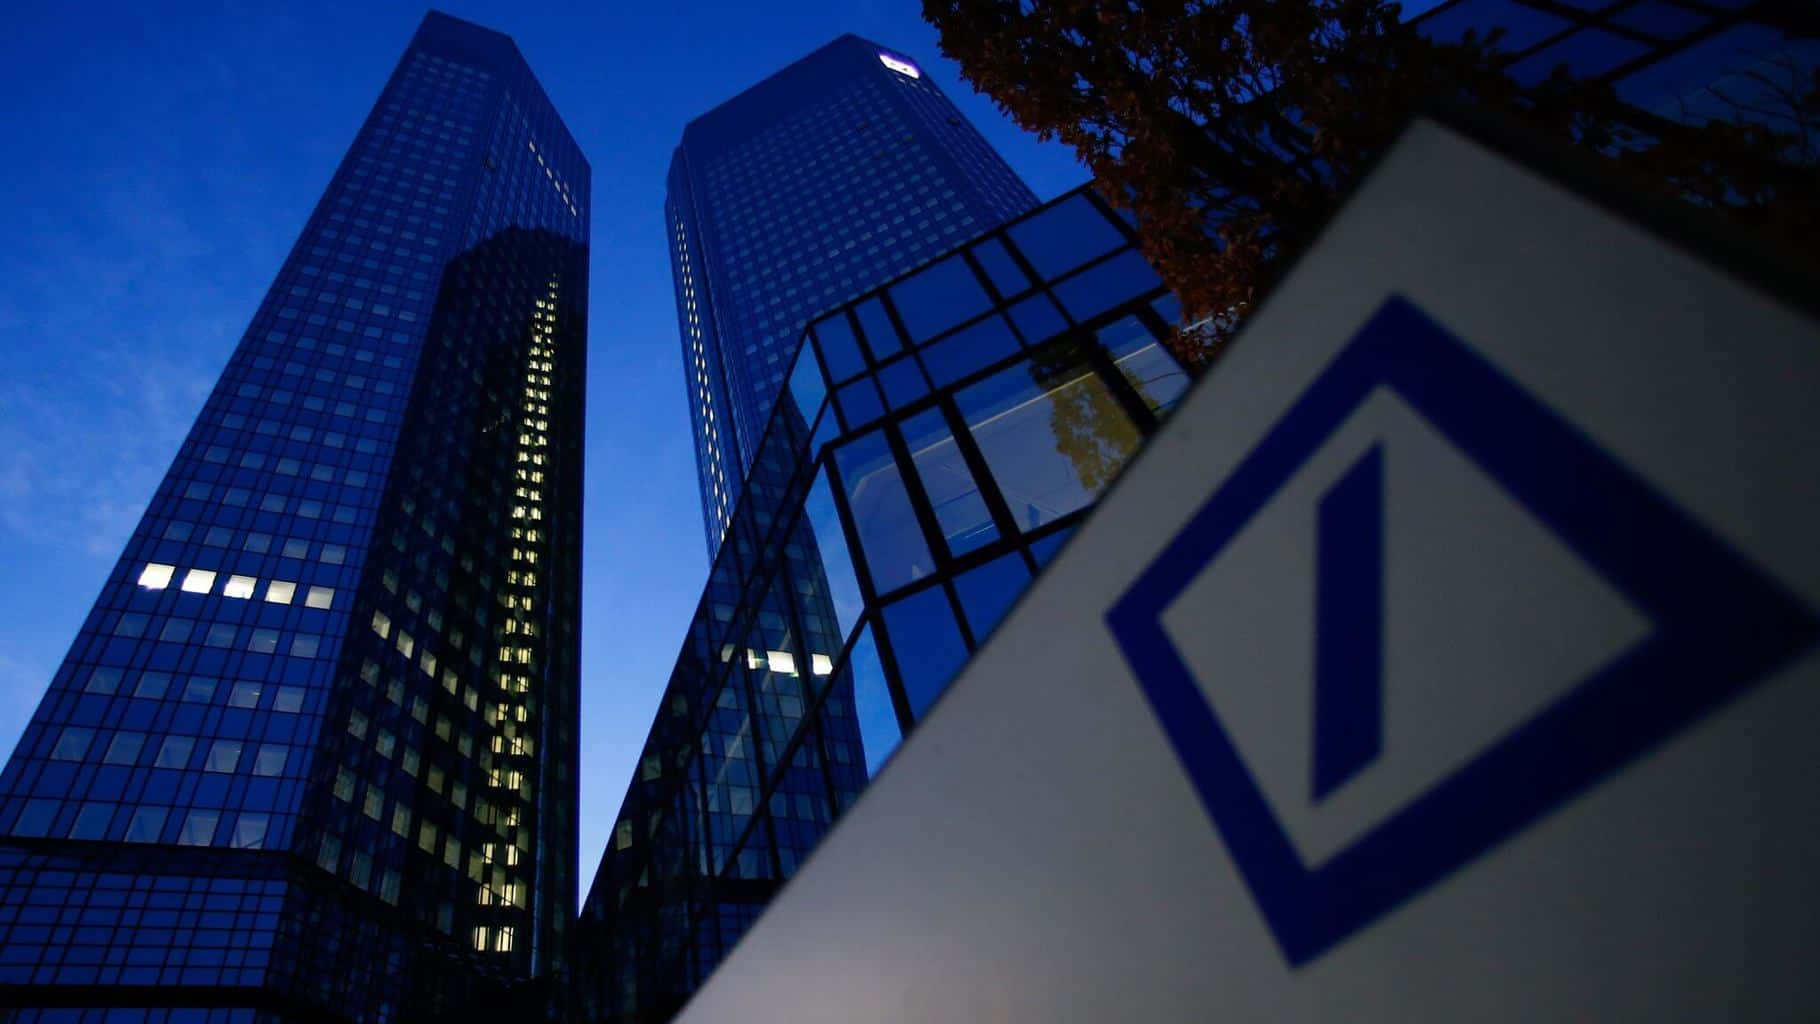 About 800 Deutsche Bank Employees Will Shift to BNP under a New Prime Brokerage Deal